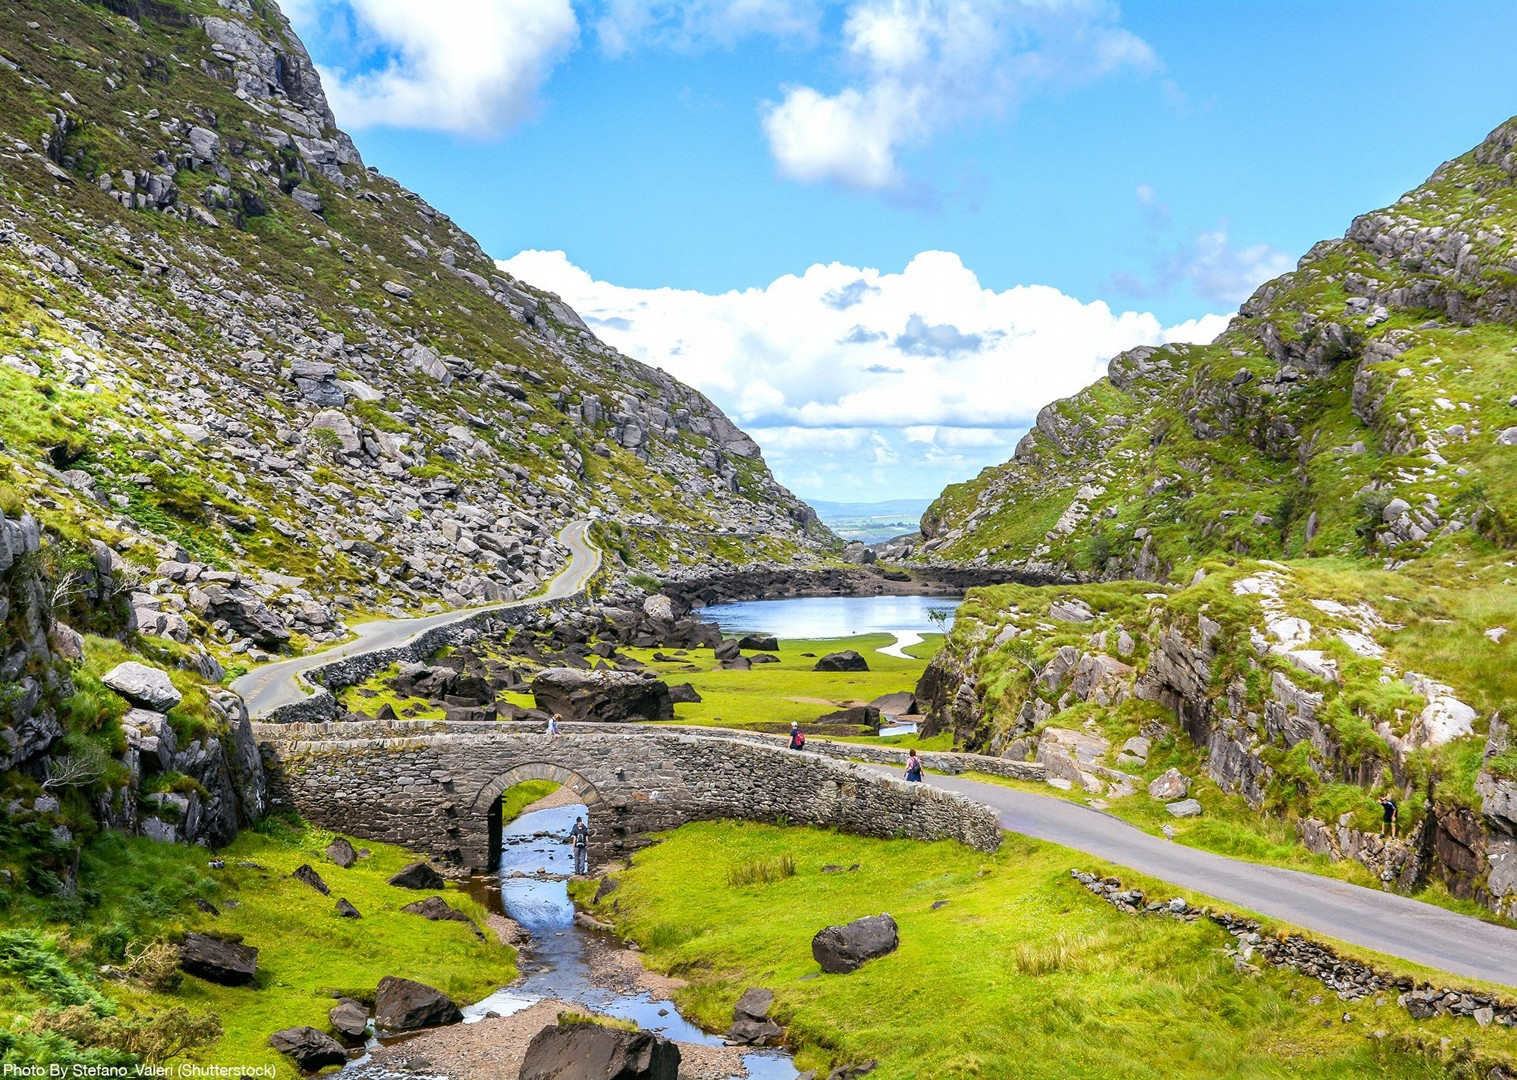 self-guided-ireland-holiday-leisure-cycling-trip.jpg - Ireland - Highlights of Kerry - Self-Guided Leisure Cycling Holiday - Leisure Cycling